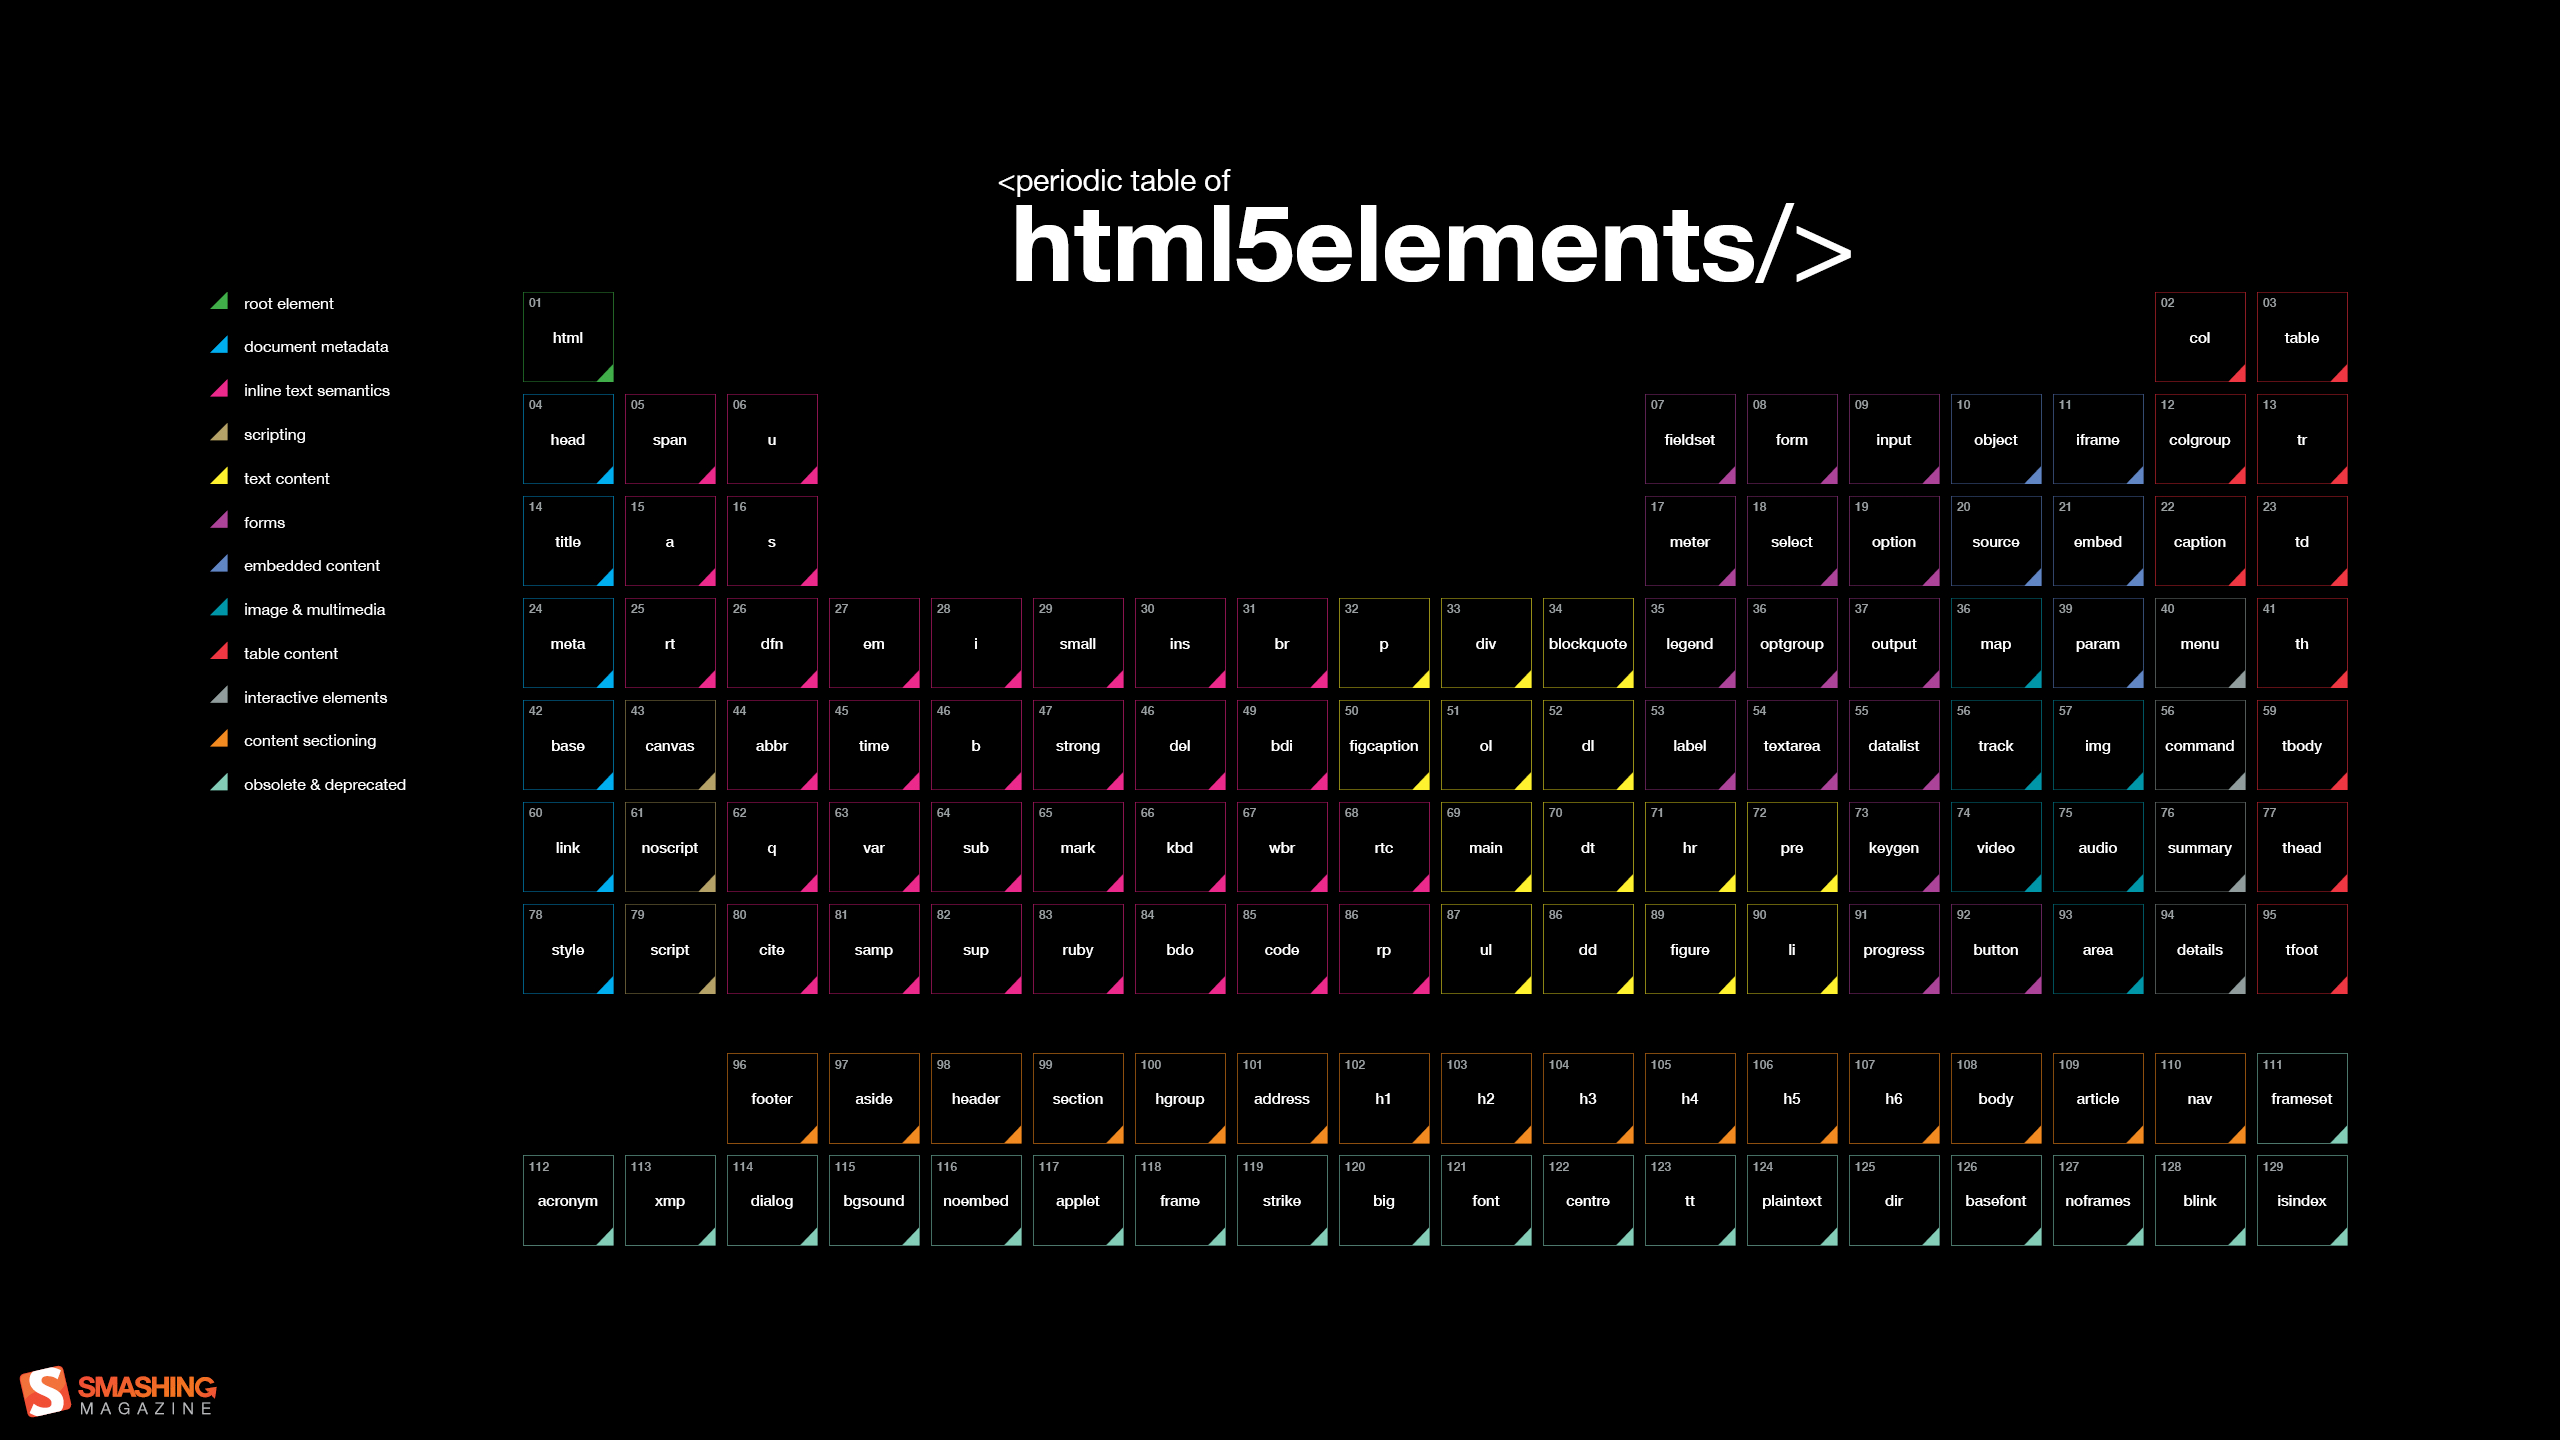 Periodic table of HTML 5 elements code.png (2560×1440